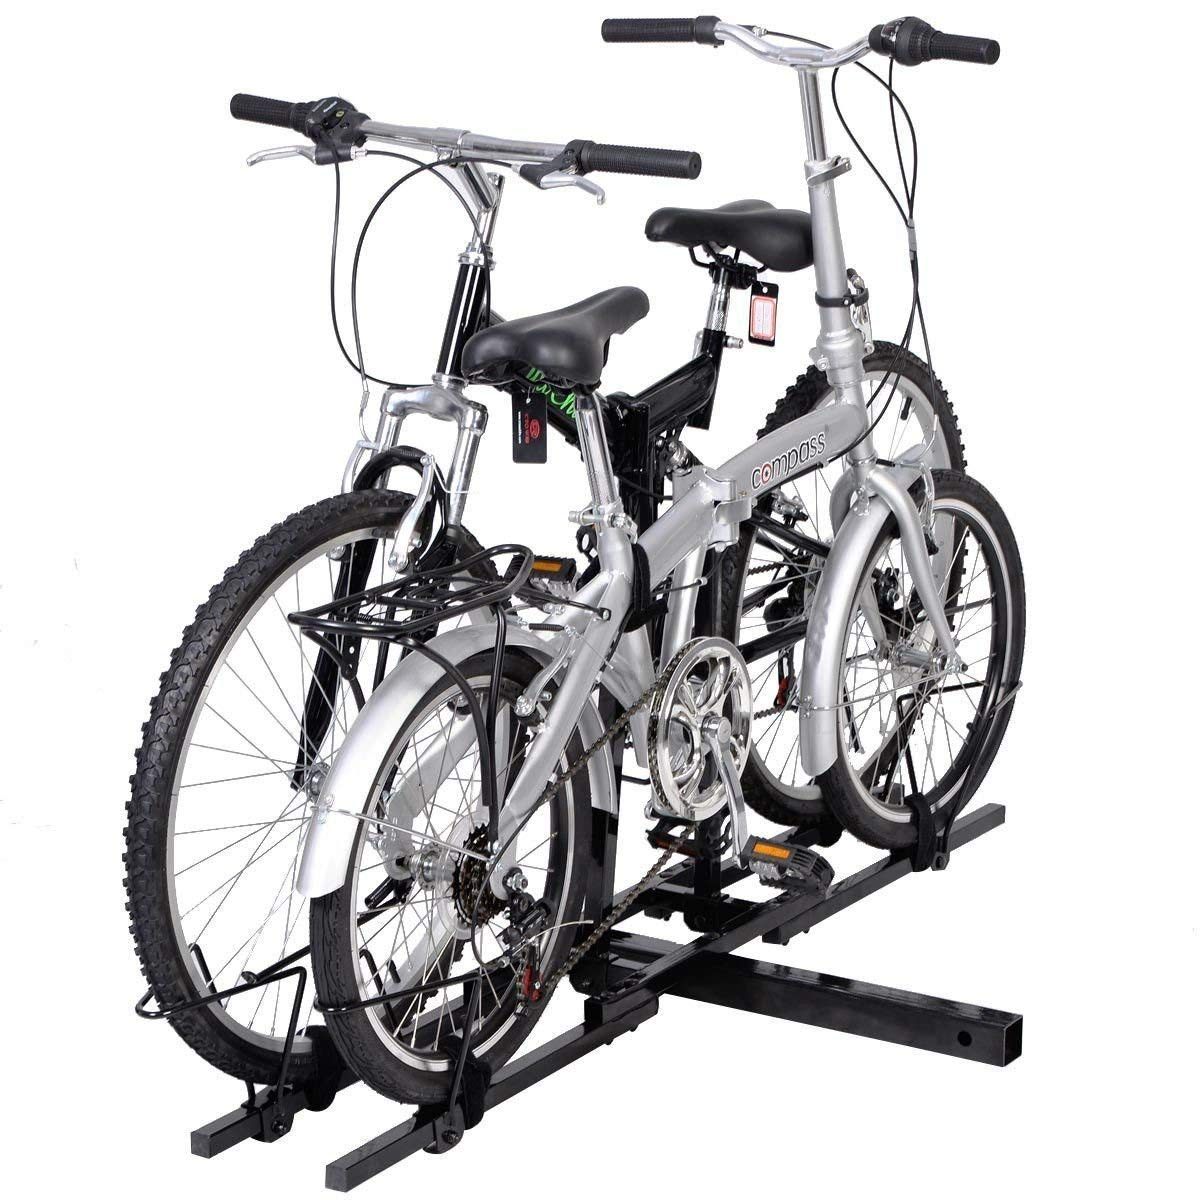 New Upright 2 Mountain Bike Carrier Hitch Mount Bicycle Rack 2 Rear for SUV Van Truck Bike Rack